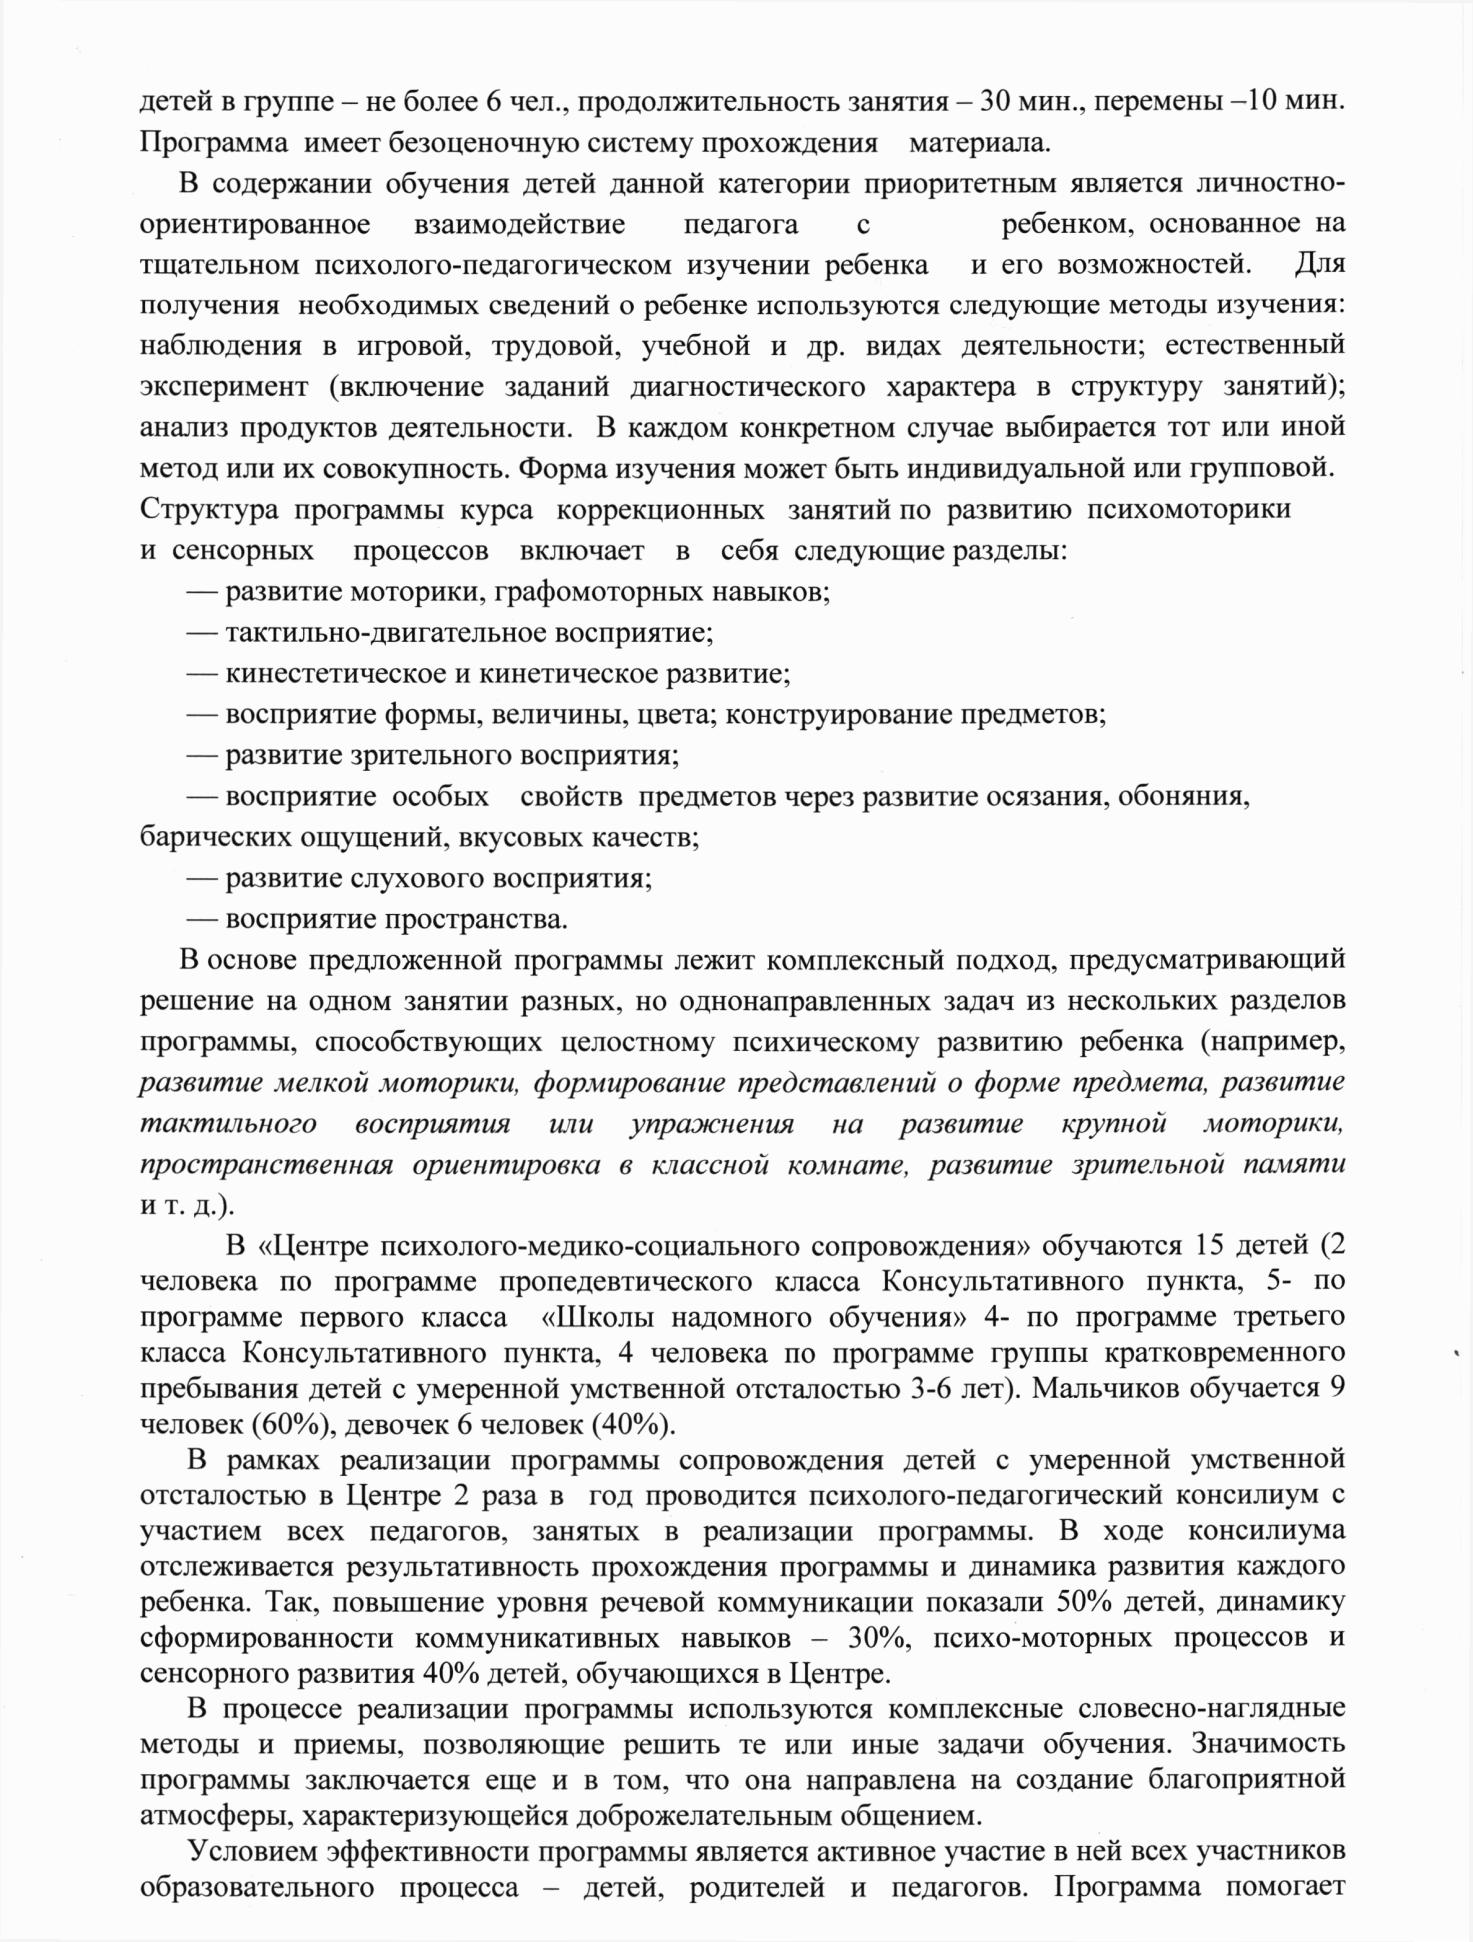 C:\Documents and Settings\Admin\Рабочий стол\7 - 0002.tif